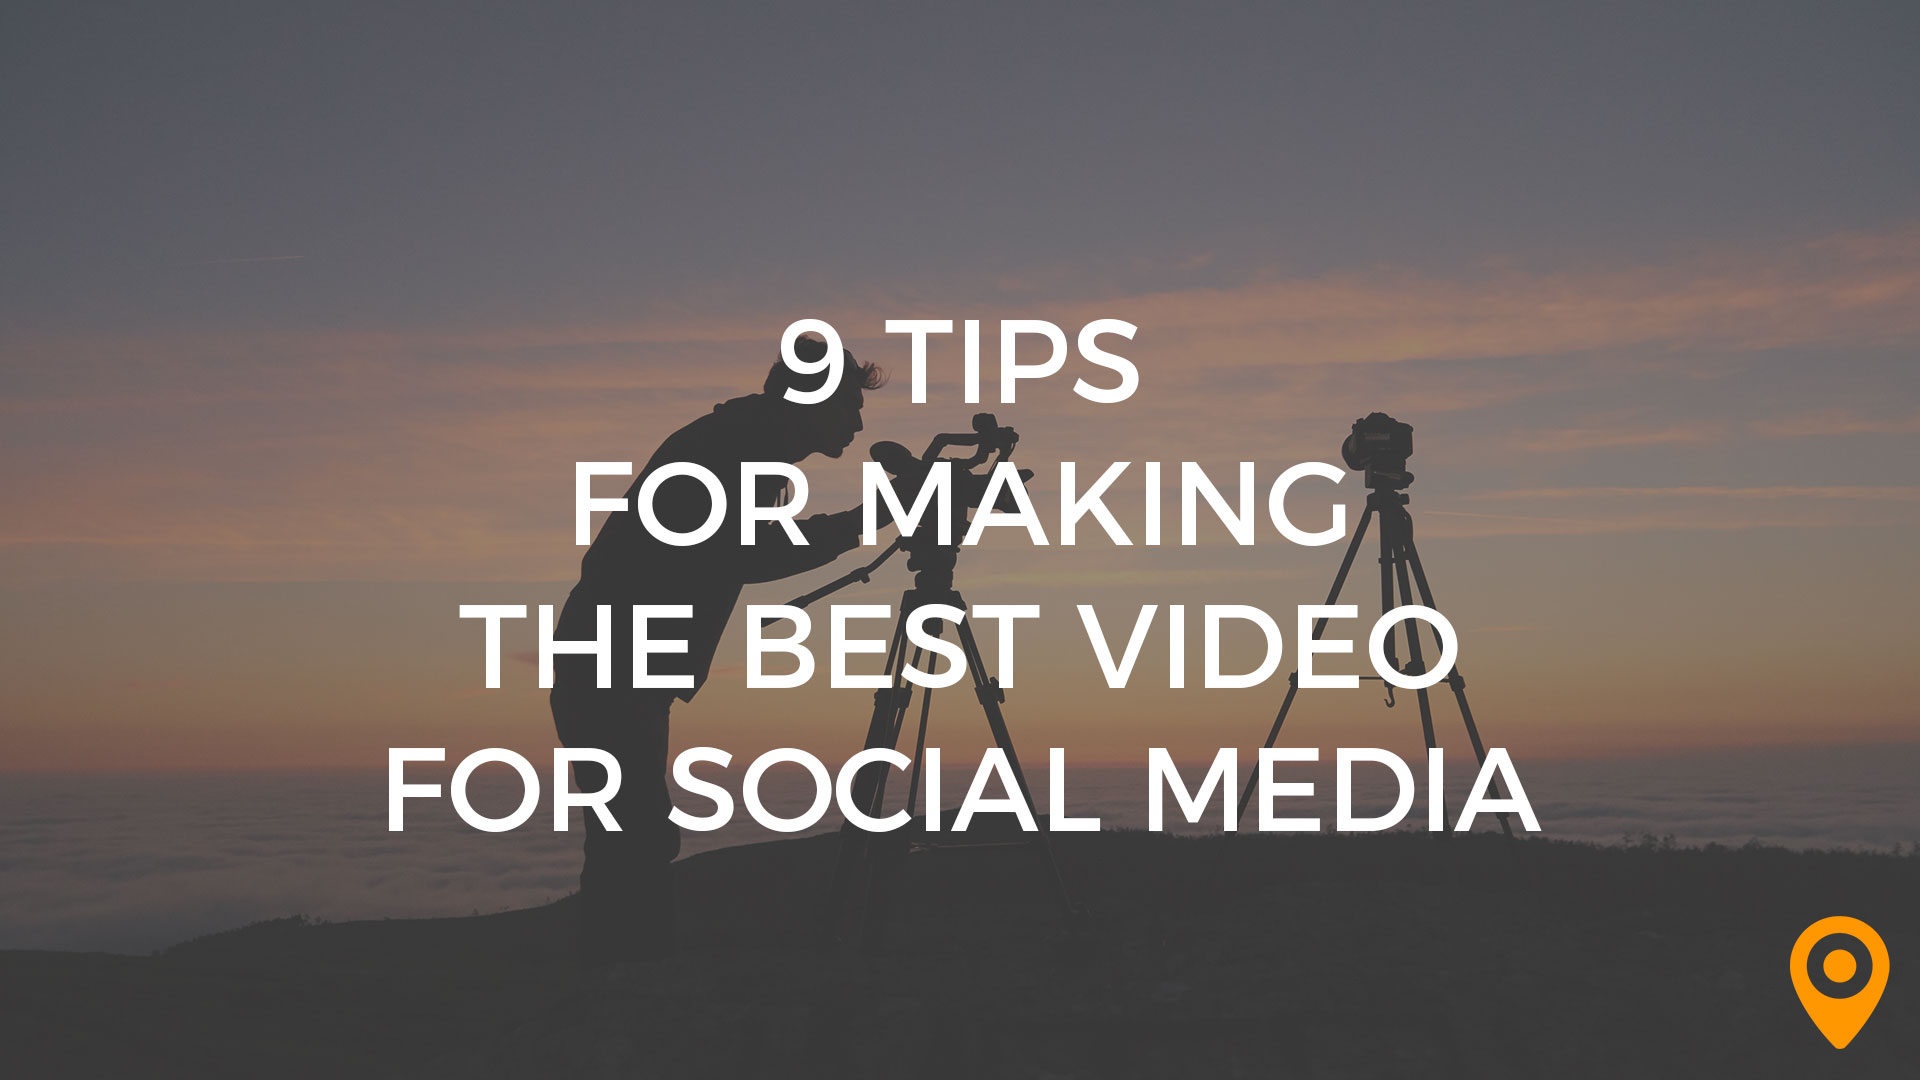 9 Tips for Making the Best Video for Social Media